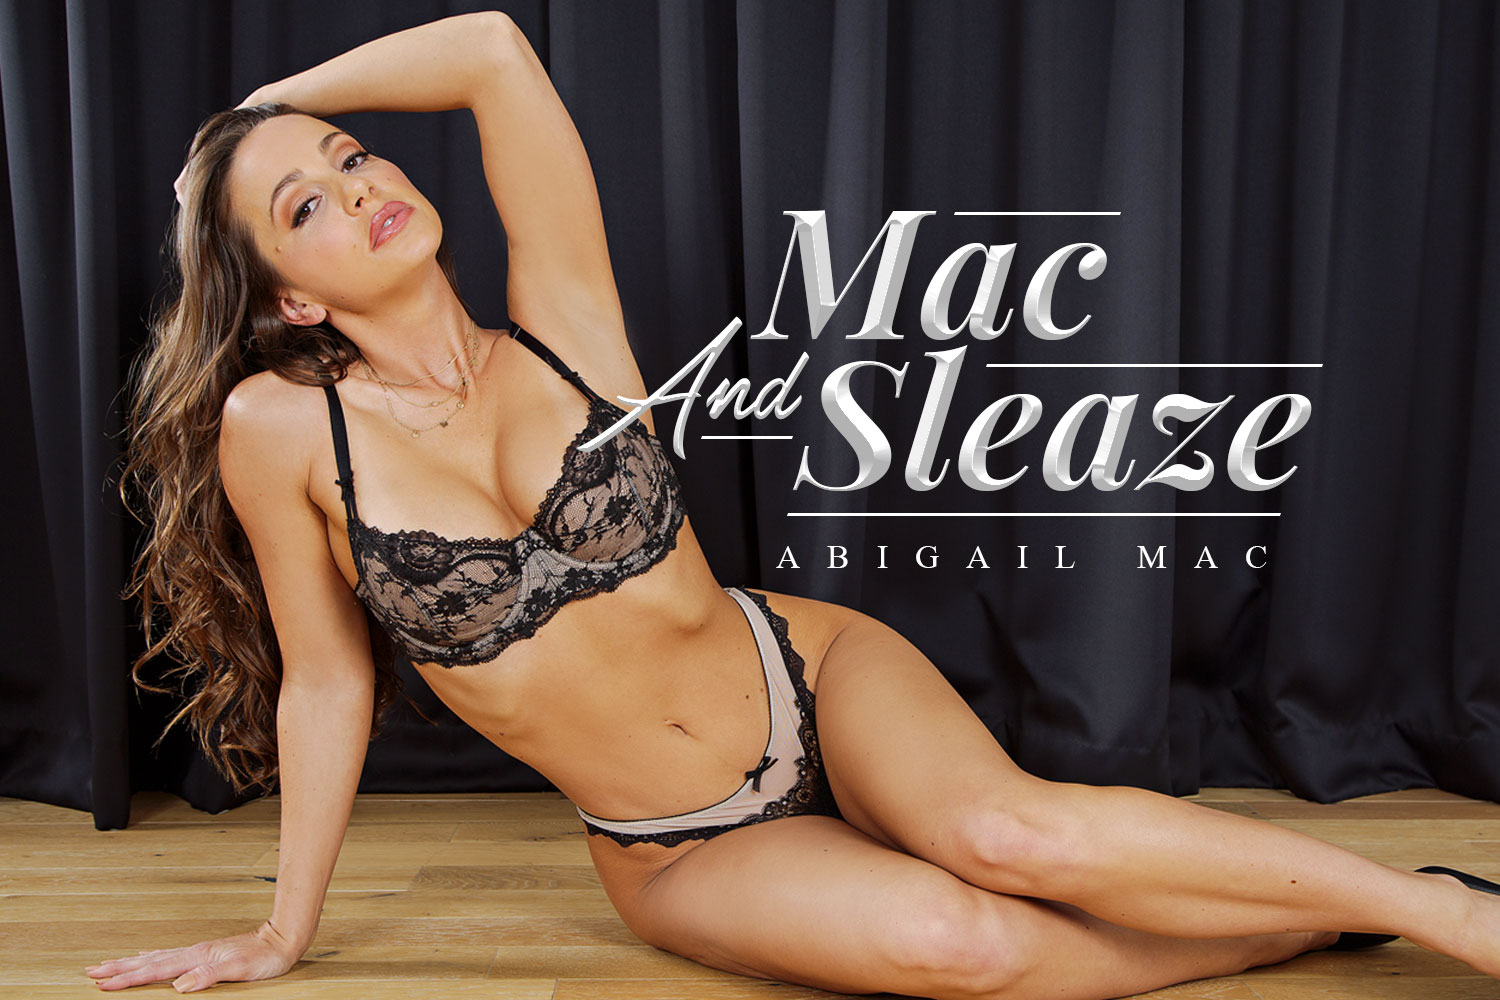 Mac And Sleaze Abigail Mac